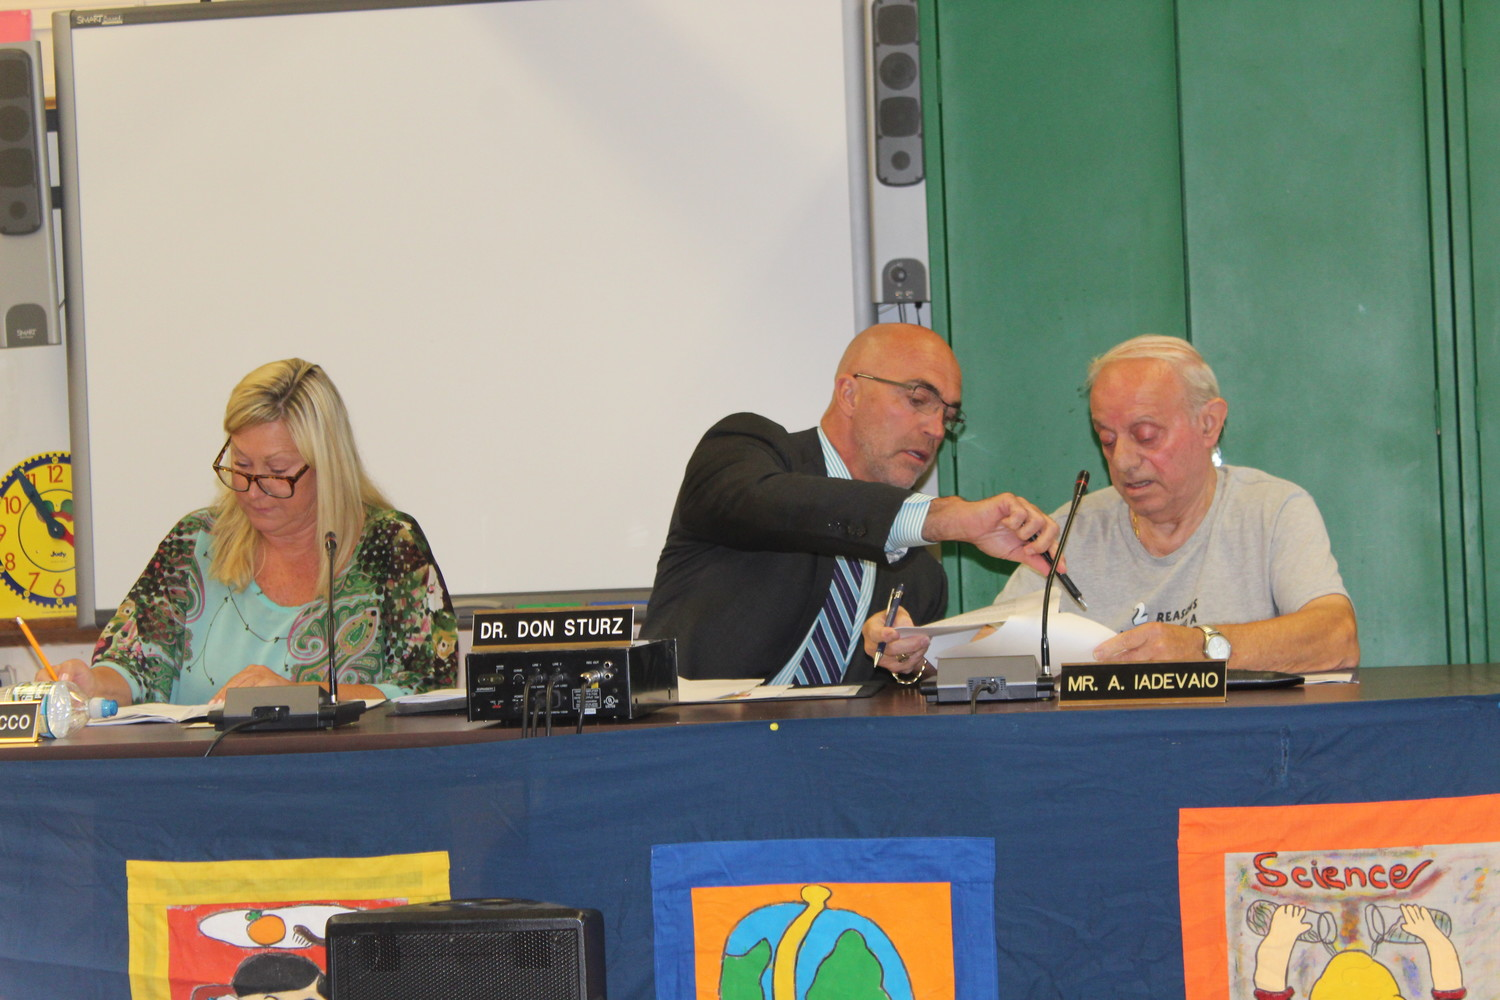 Donna LaRocco was elected school board president on Monday, despite Tony Iadevaio's claim that he should be the next president. Iadevaio is at right, along with Don Sturz, who was sworn in as the new superintendent.